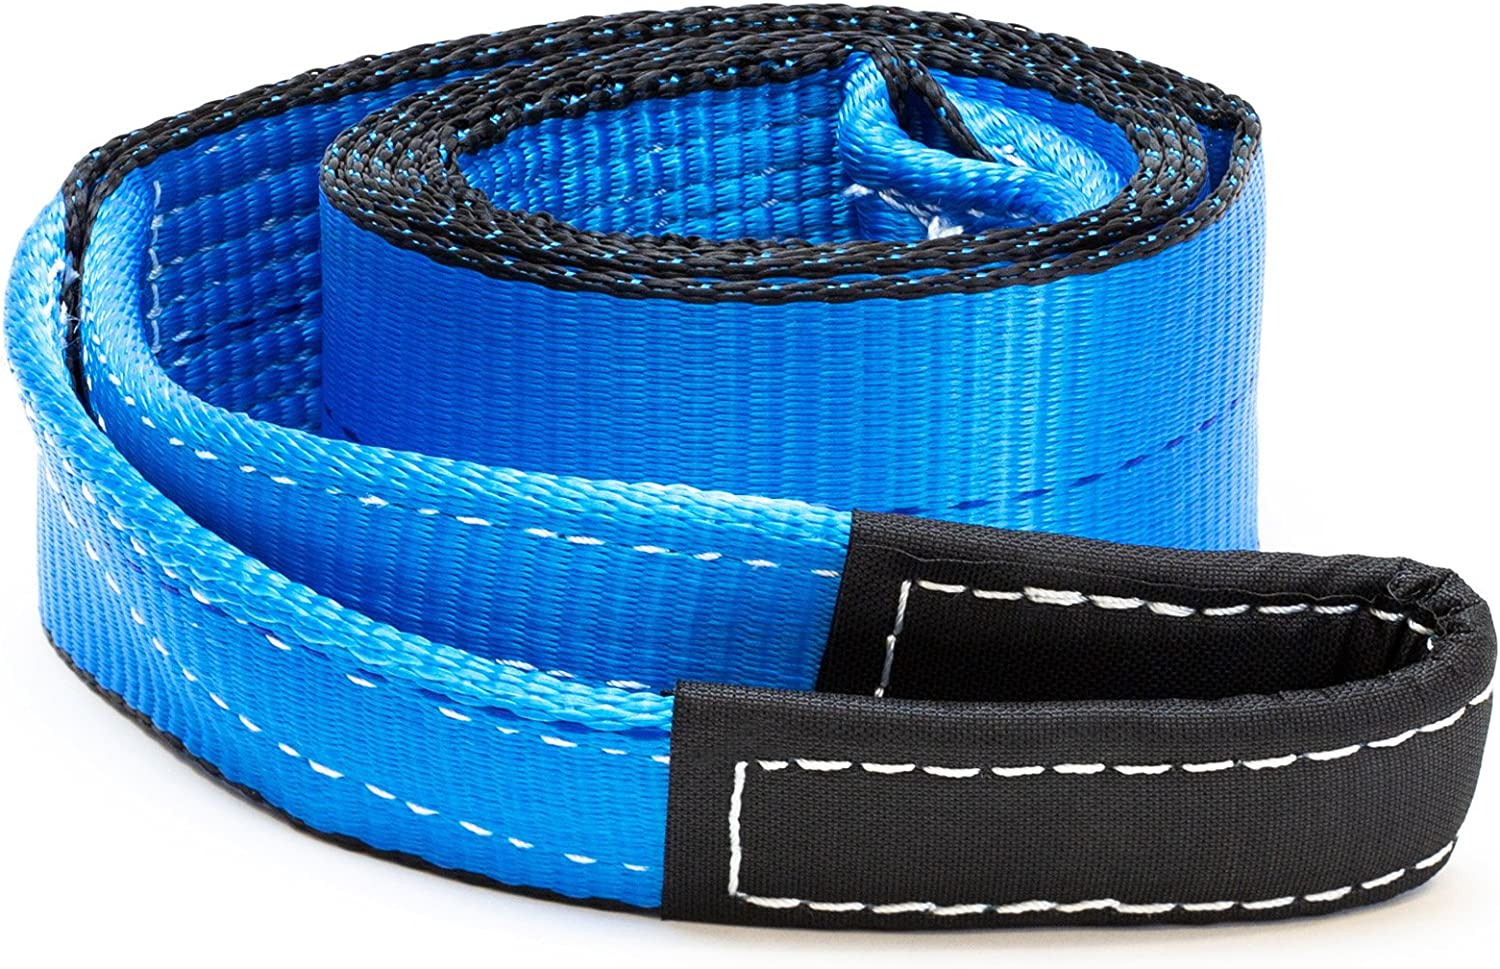 Blue Driver Recovery Products TS38-BLU 15 Ton Recovery Winch Tree Saver Pulling Capacity Extreme Heavy Duty Nylon 30,000 Pound Driver Recovery 3 x 8 Tow Strap